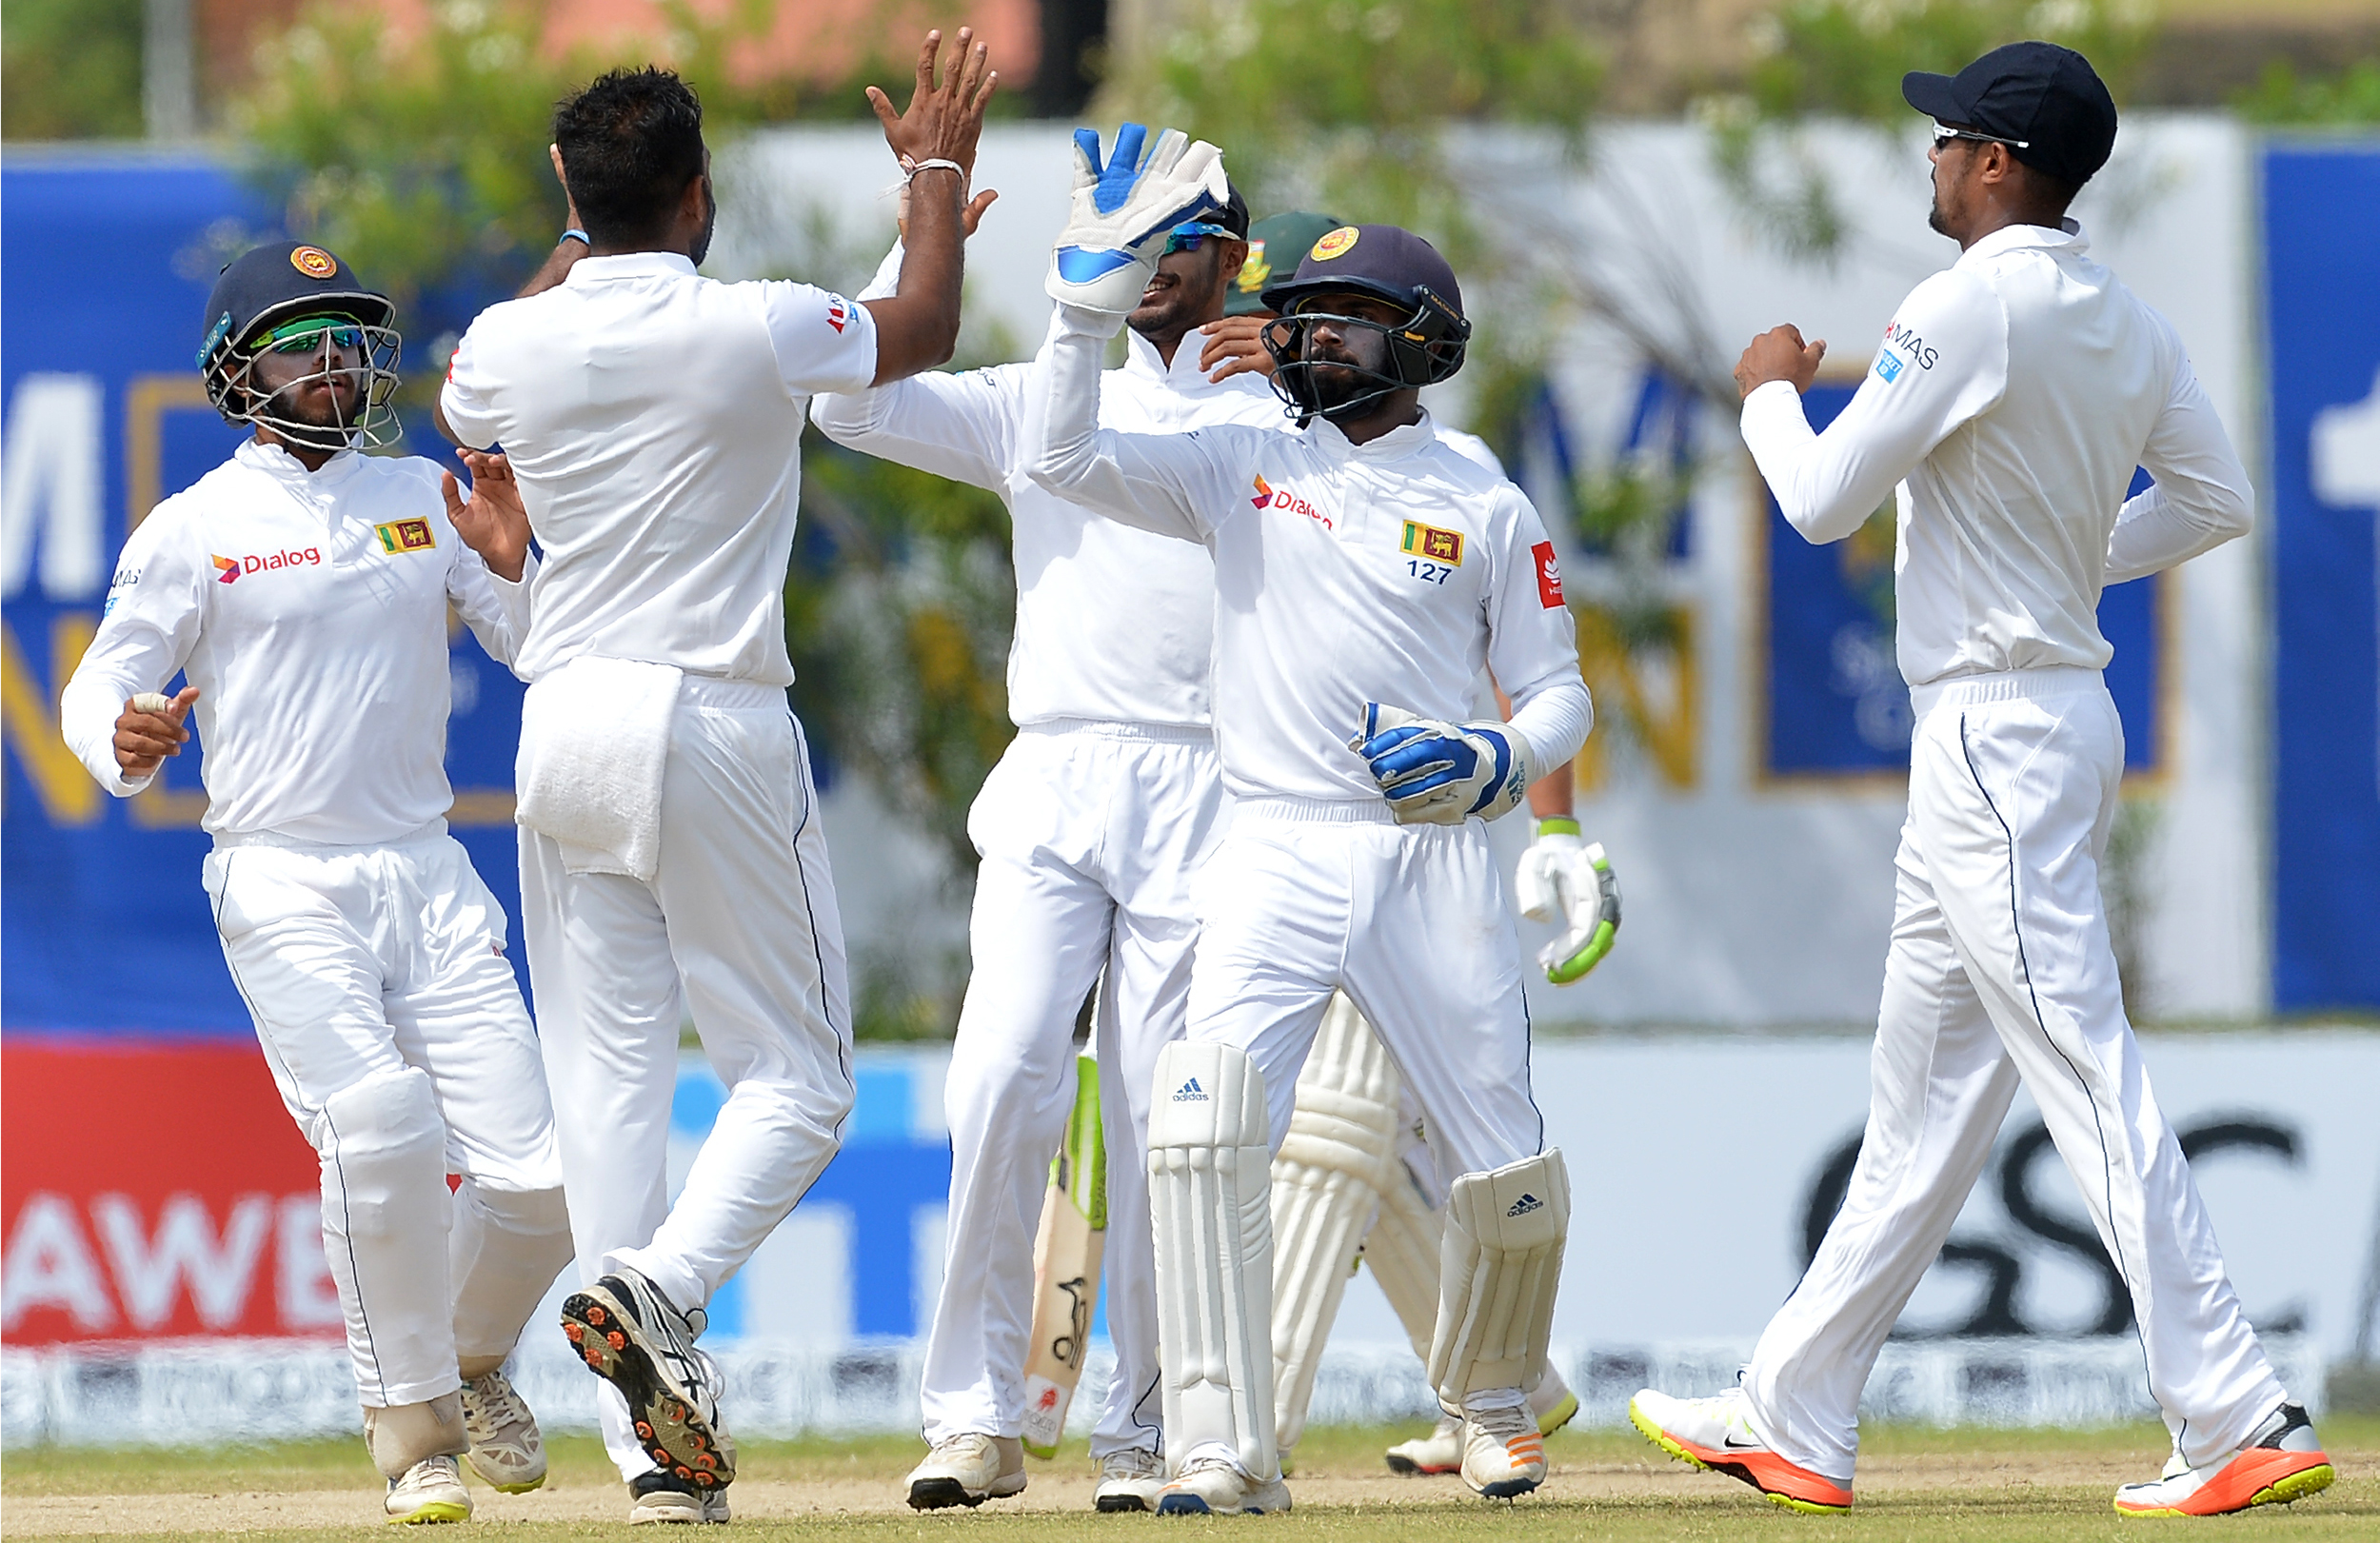 Sri Lankan cricketers thrash South Africa